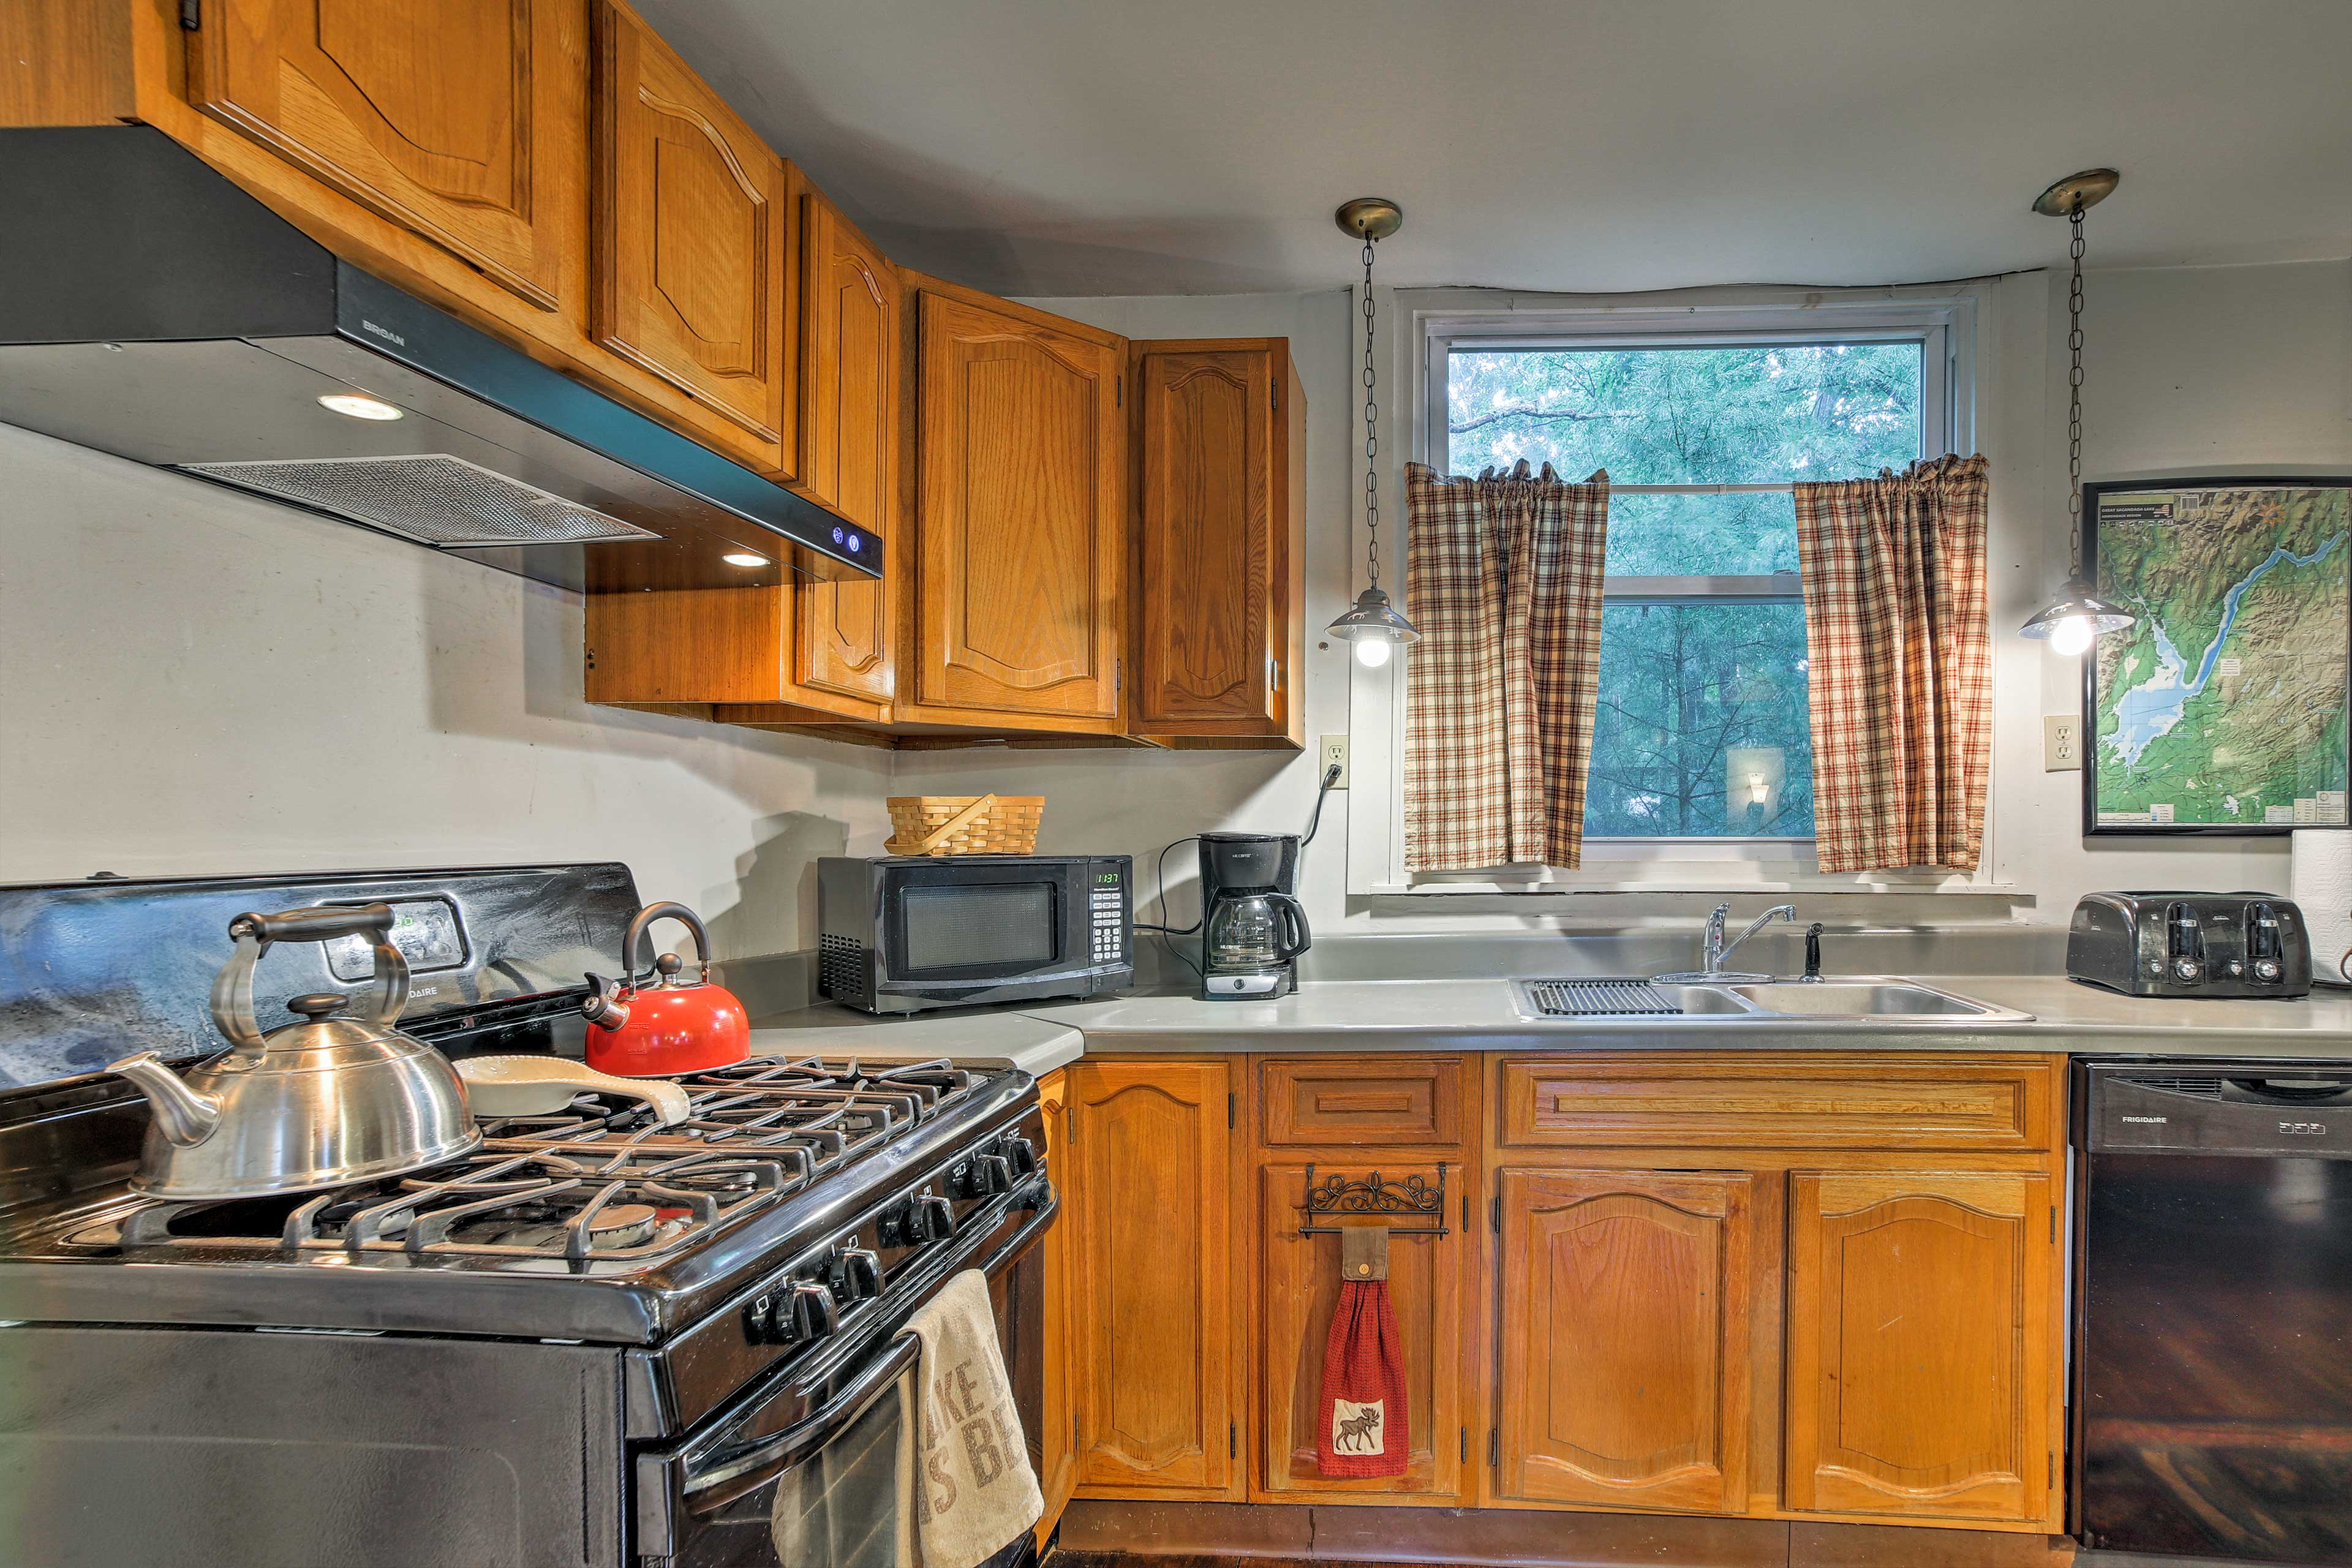 The kitchen was recently updated with all new appliances!